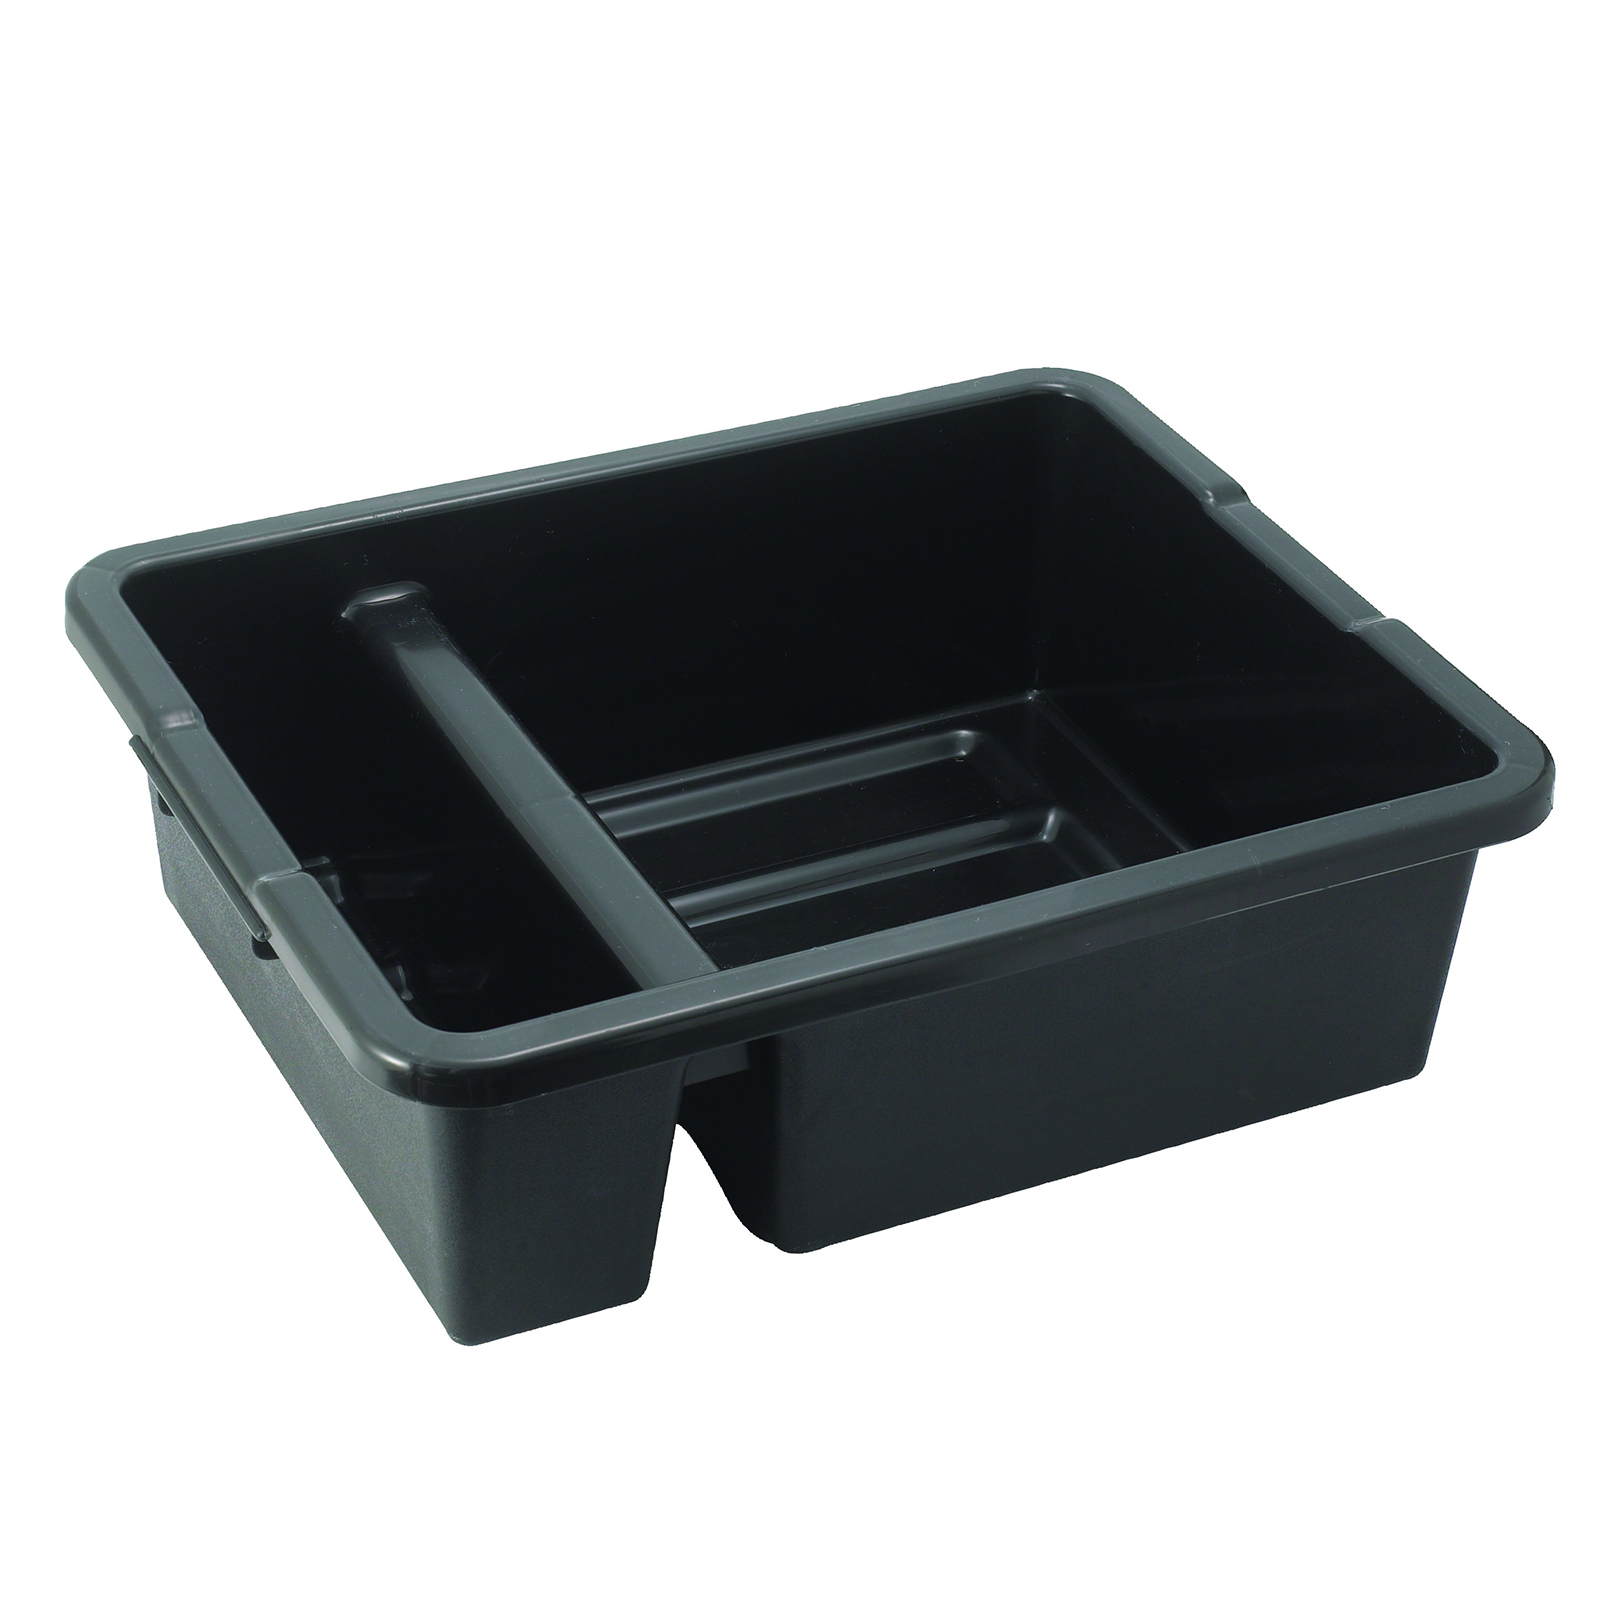 Winco PLTC-7K bus box / tub